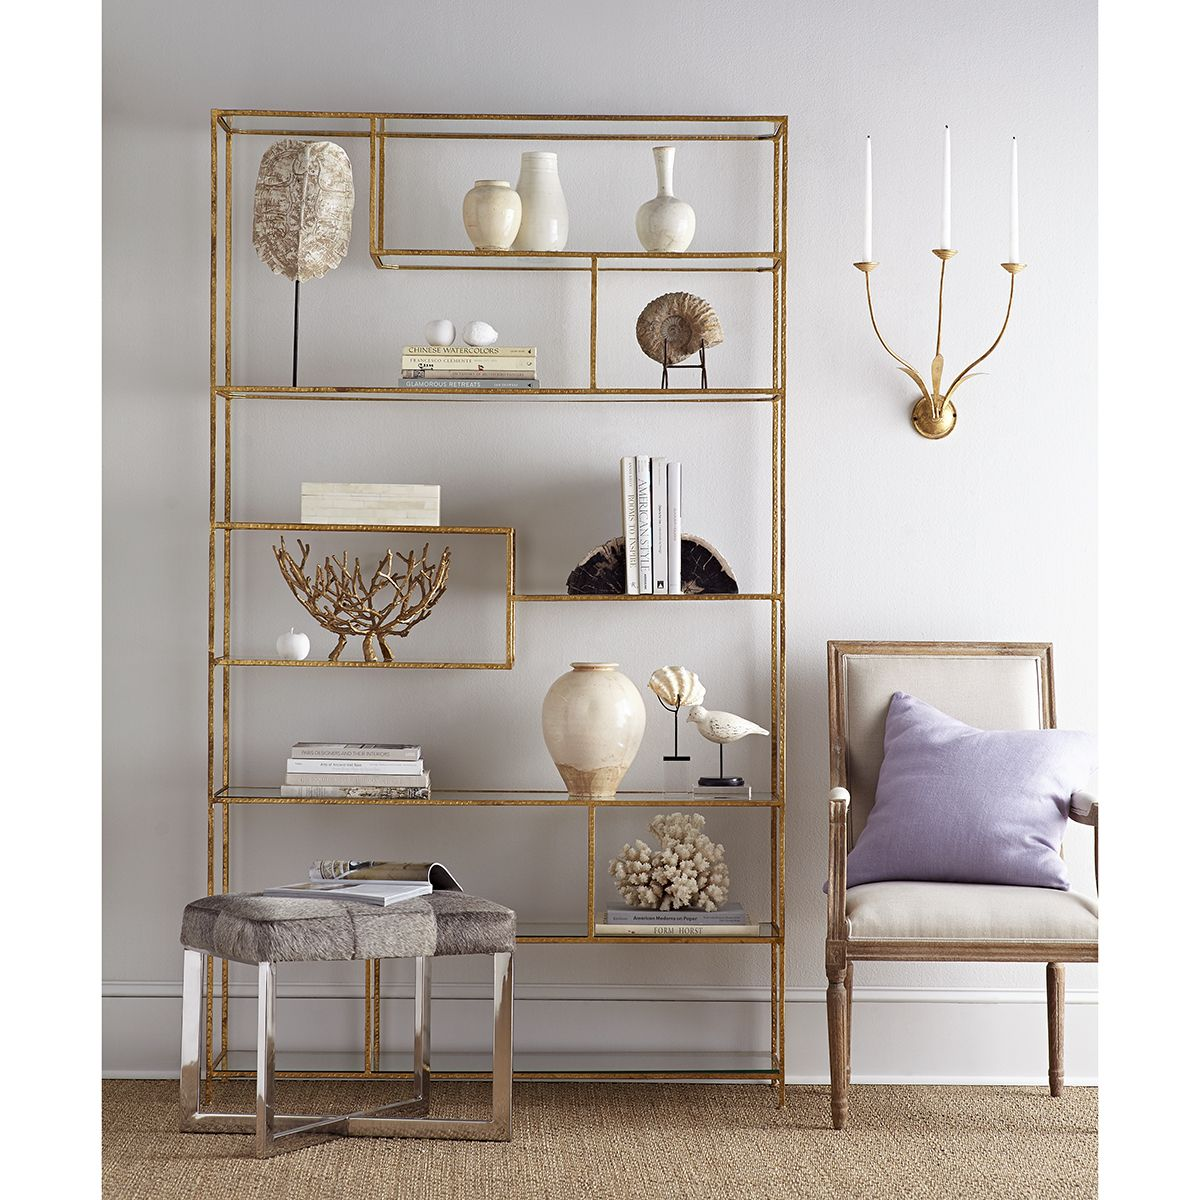 Elegant Tag Re Living Rooms Bookcase Styling And Shelves # Muebles Tubulares Ponce